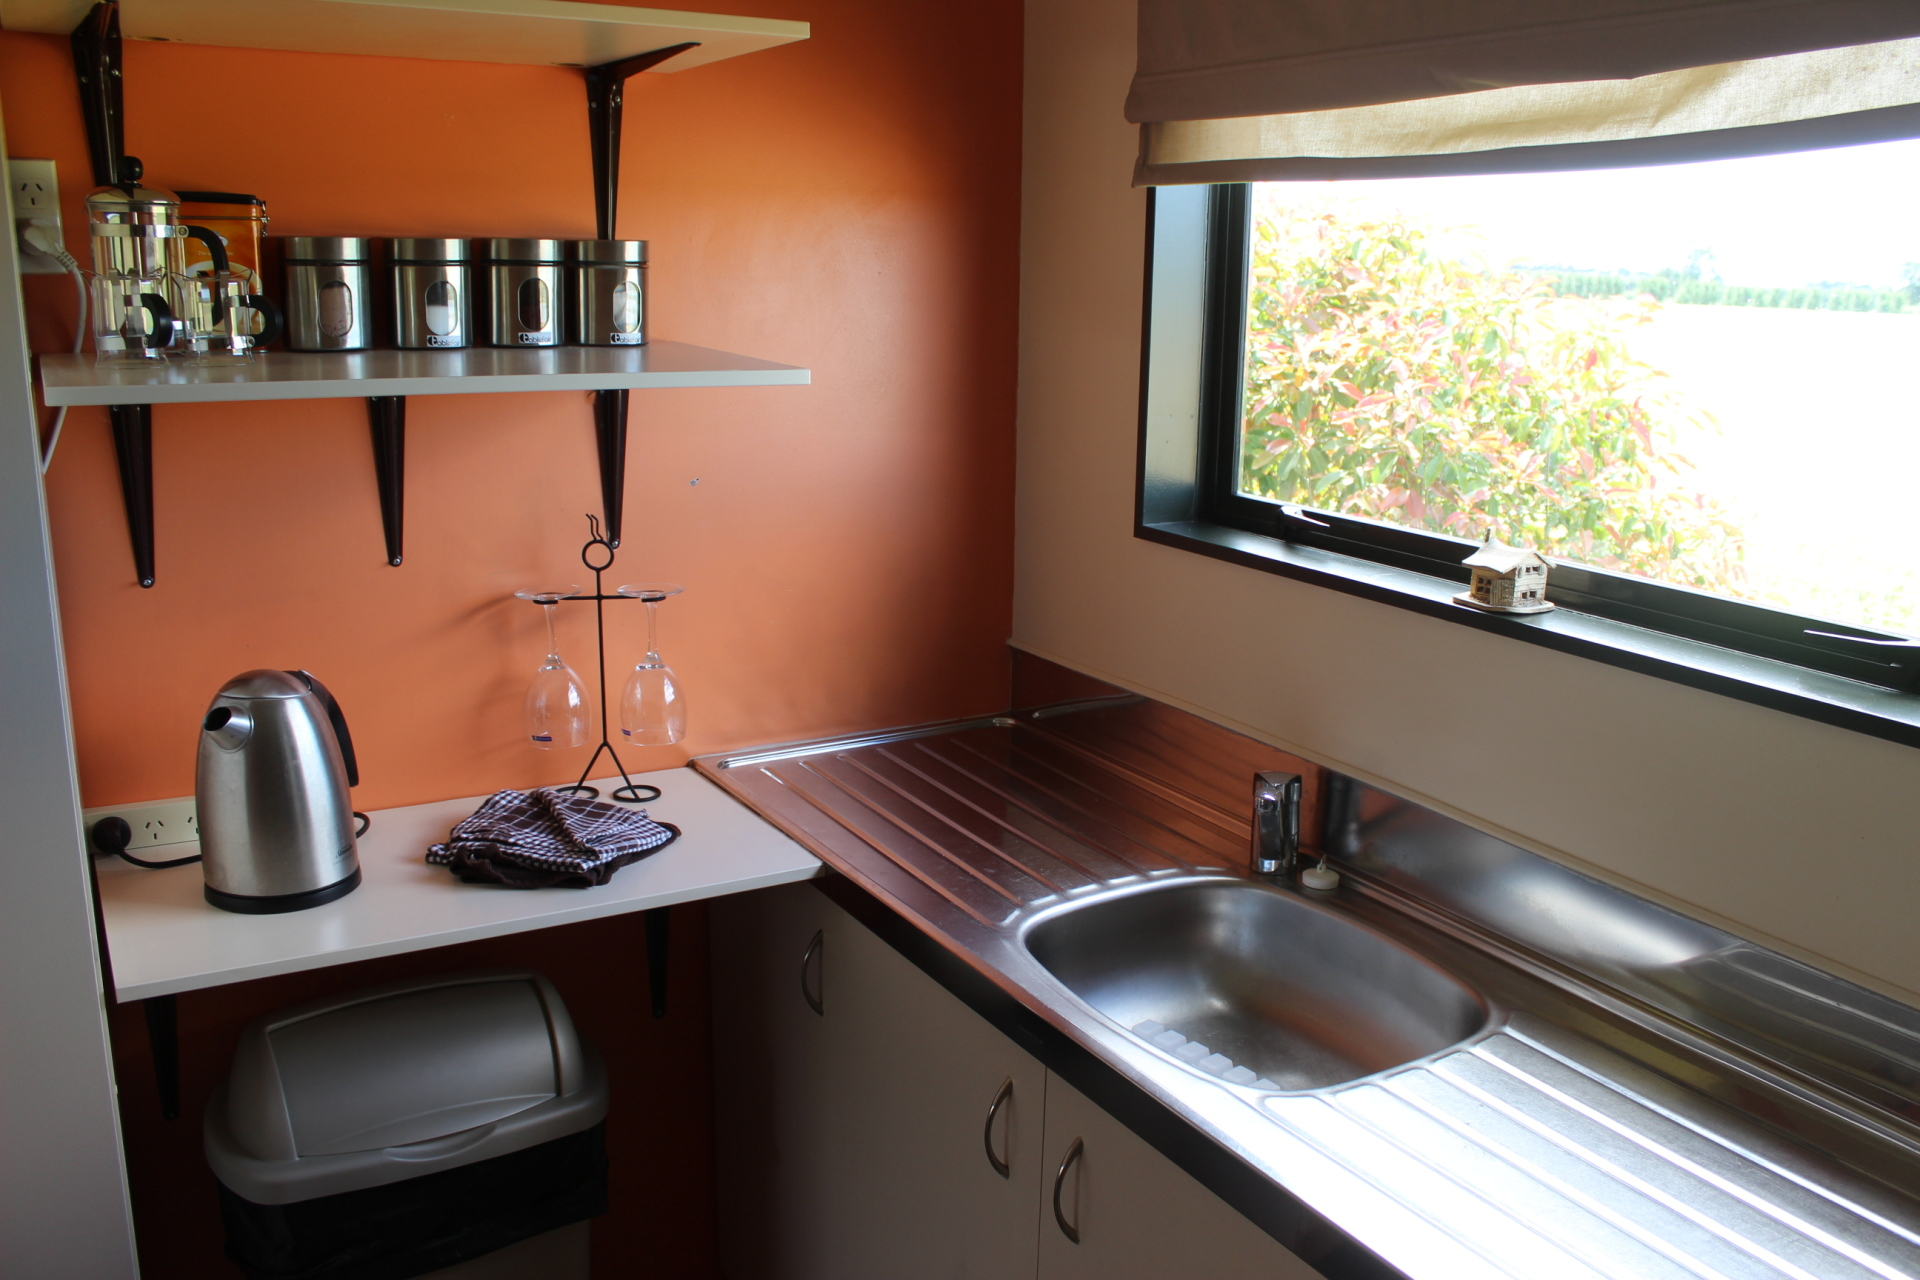 Kitchenette - Eyreview Retreat